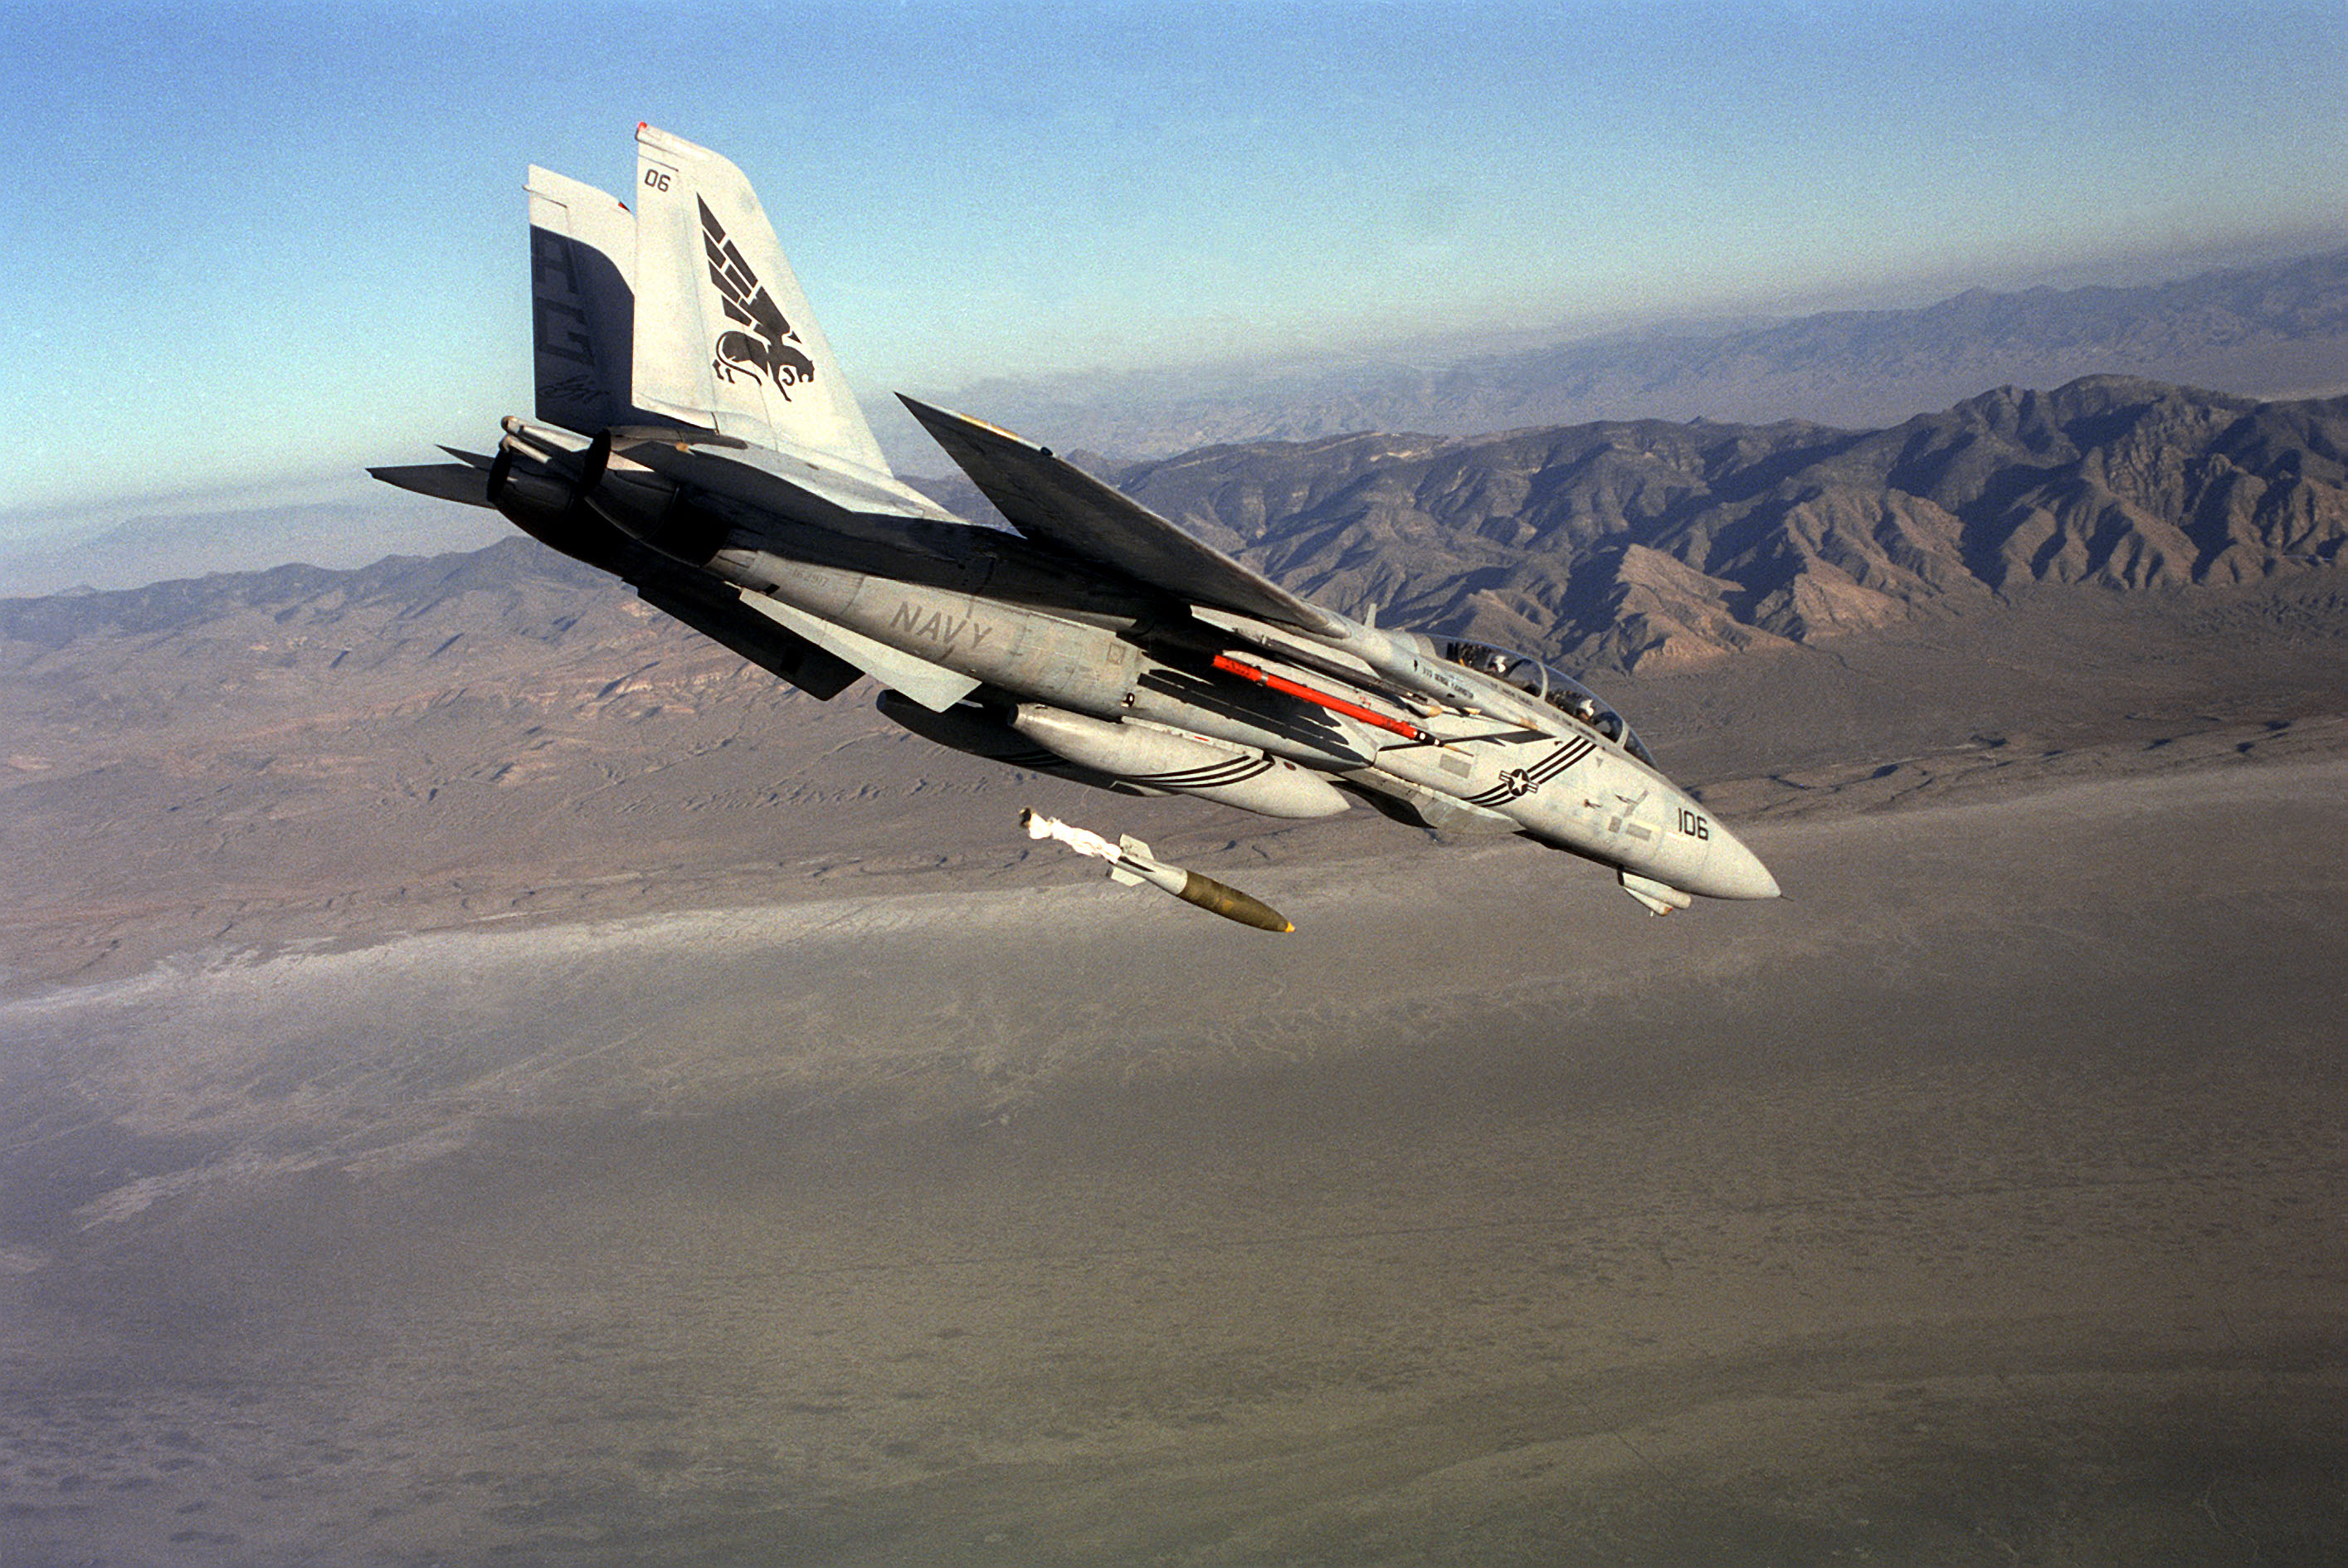 File:F-14B VF-143 Bomb.JPEG - Wikimedia Commons